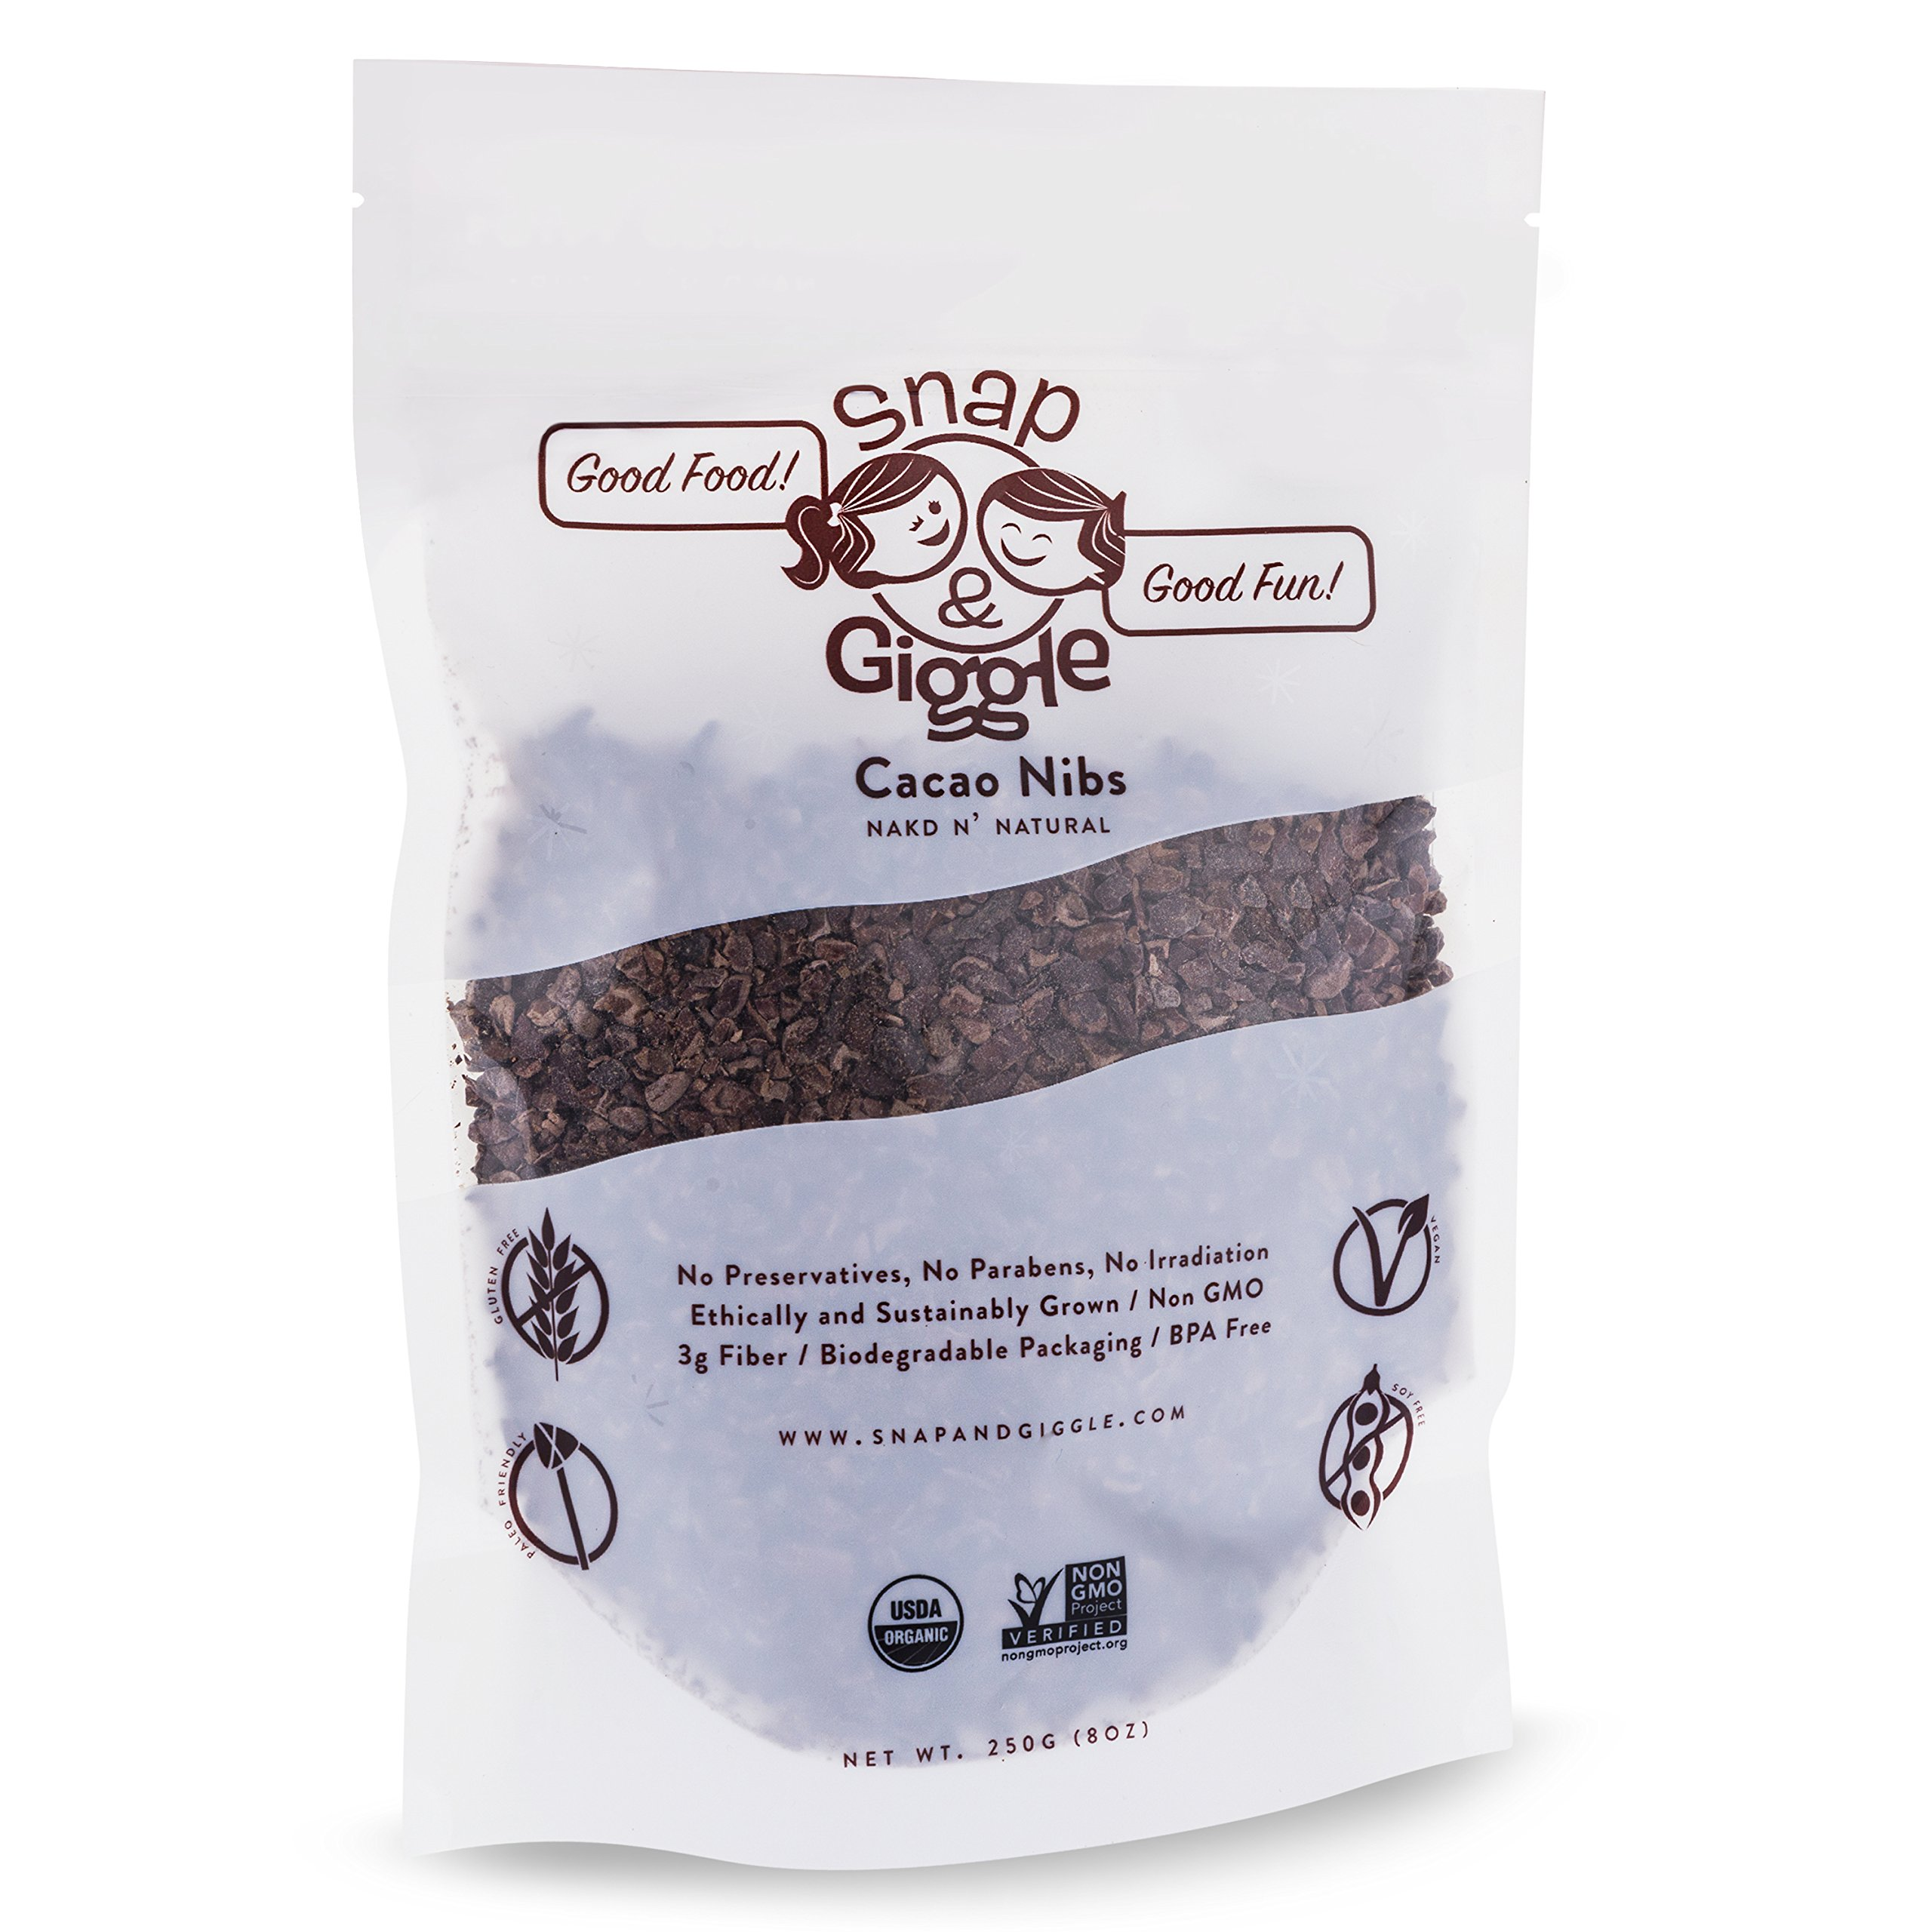 Snap & Giggle Organic Cacao Nibs, Sugar Free Low Carb Dark Chocolate Chips, Excellent for Keto, Vegan, Gluten Free Snacks, High Fiber, Magnesium, Polyphenols, NonGMO, Ethically Sourced, 250 Grams